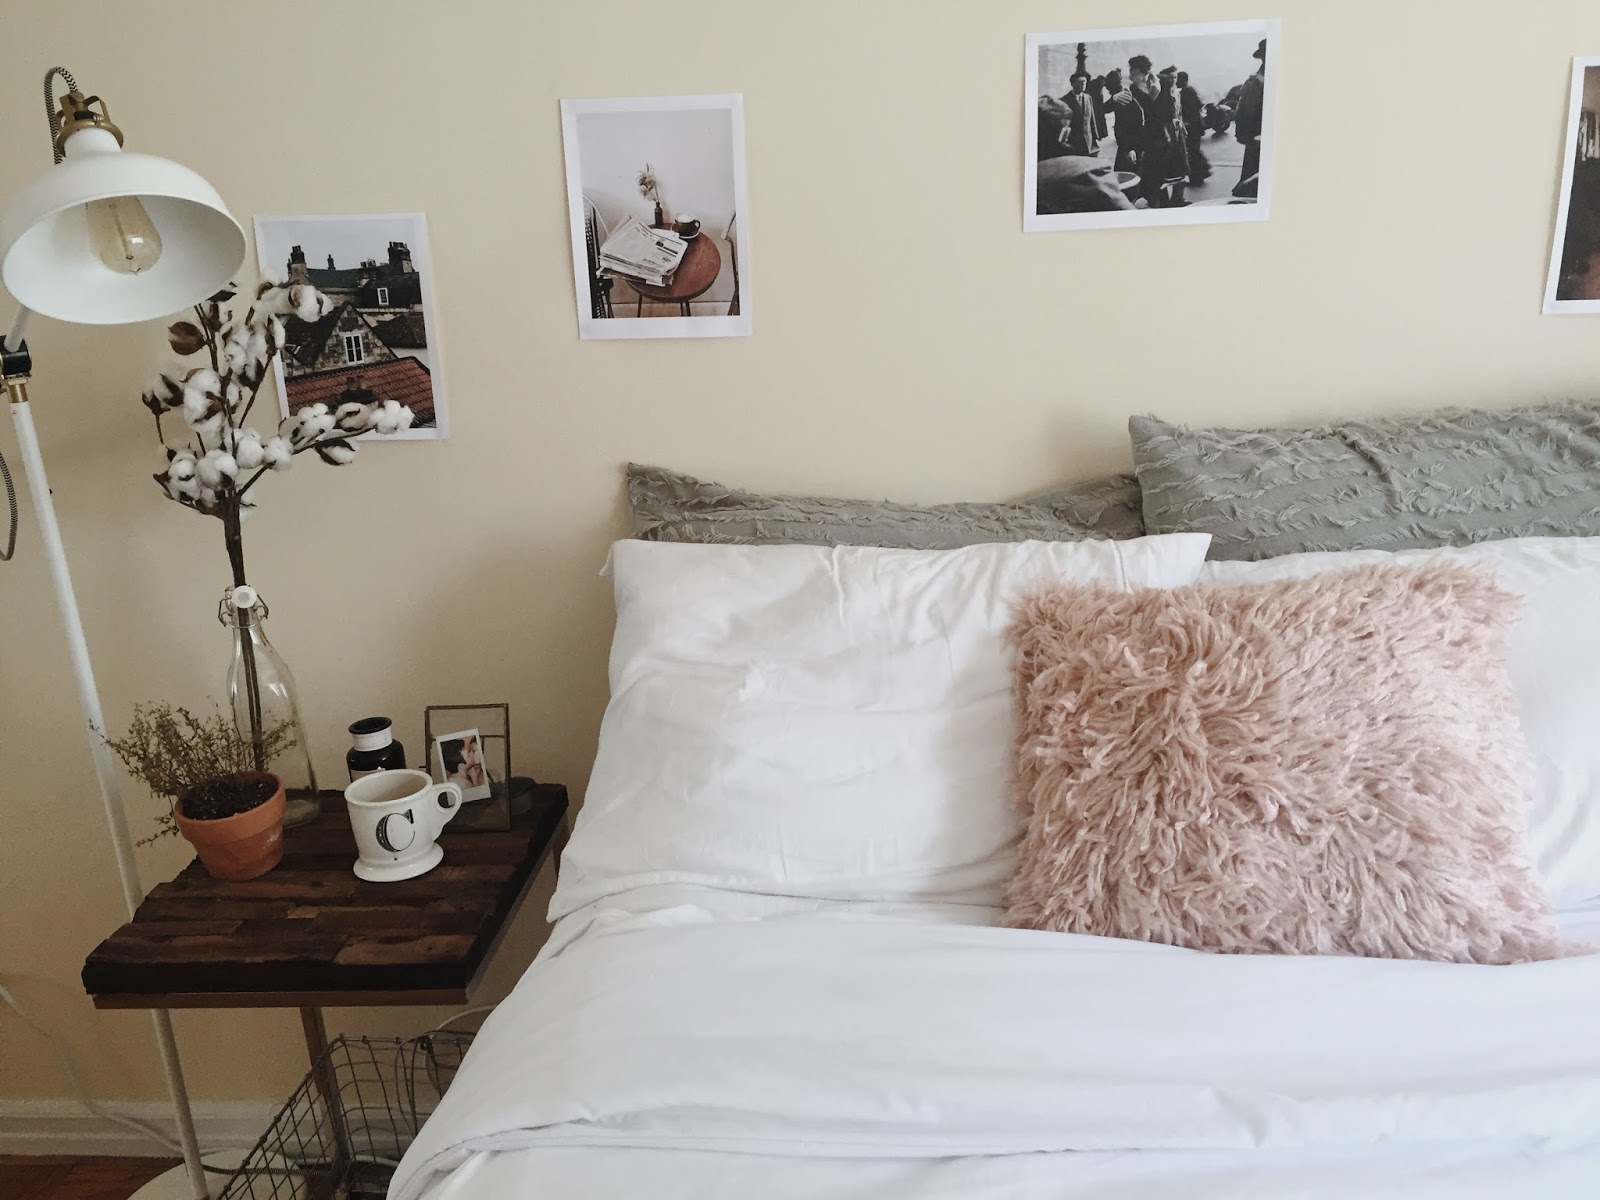 Urban outfitters bedroom - Urban Outfitters Recently Sent Me Some Amazing Pieces To Add To My Room And I Couldn T Be More Excited To Share Them With You Guys